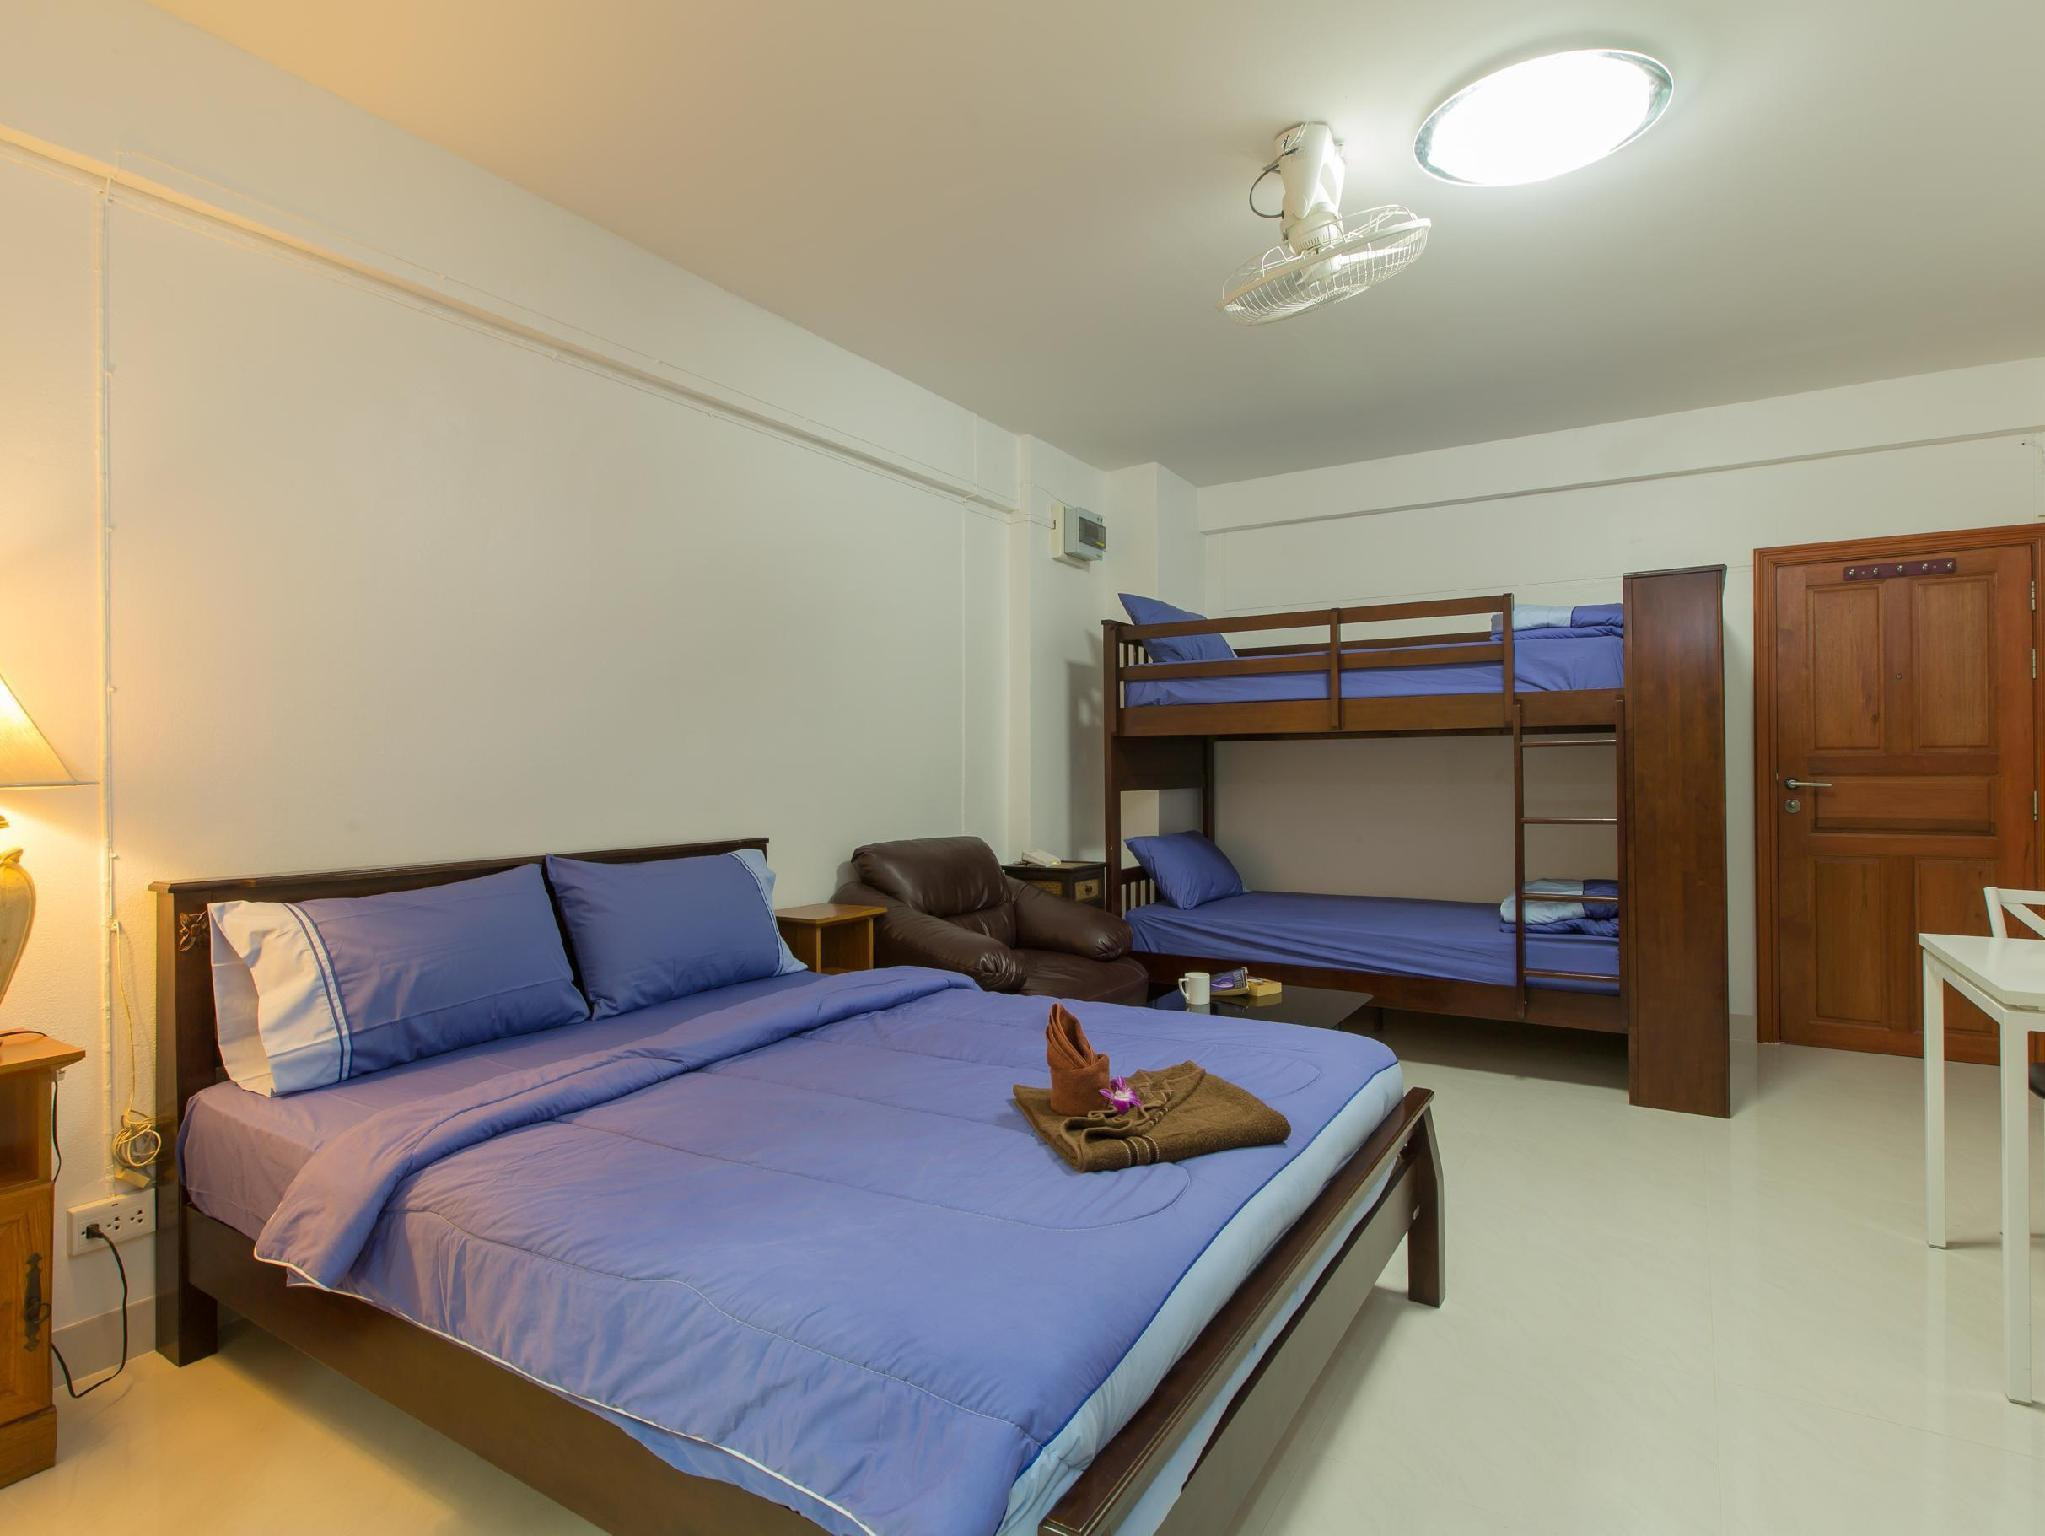 Studio with King Bed And Bunk Bed For 4 Persons